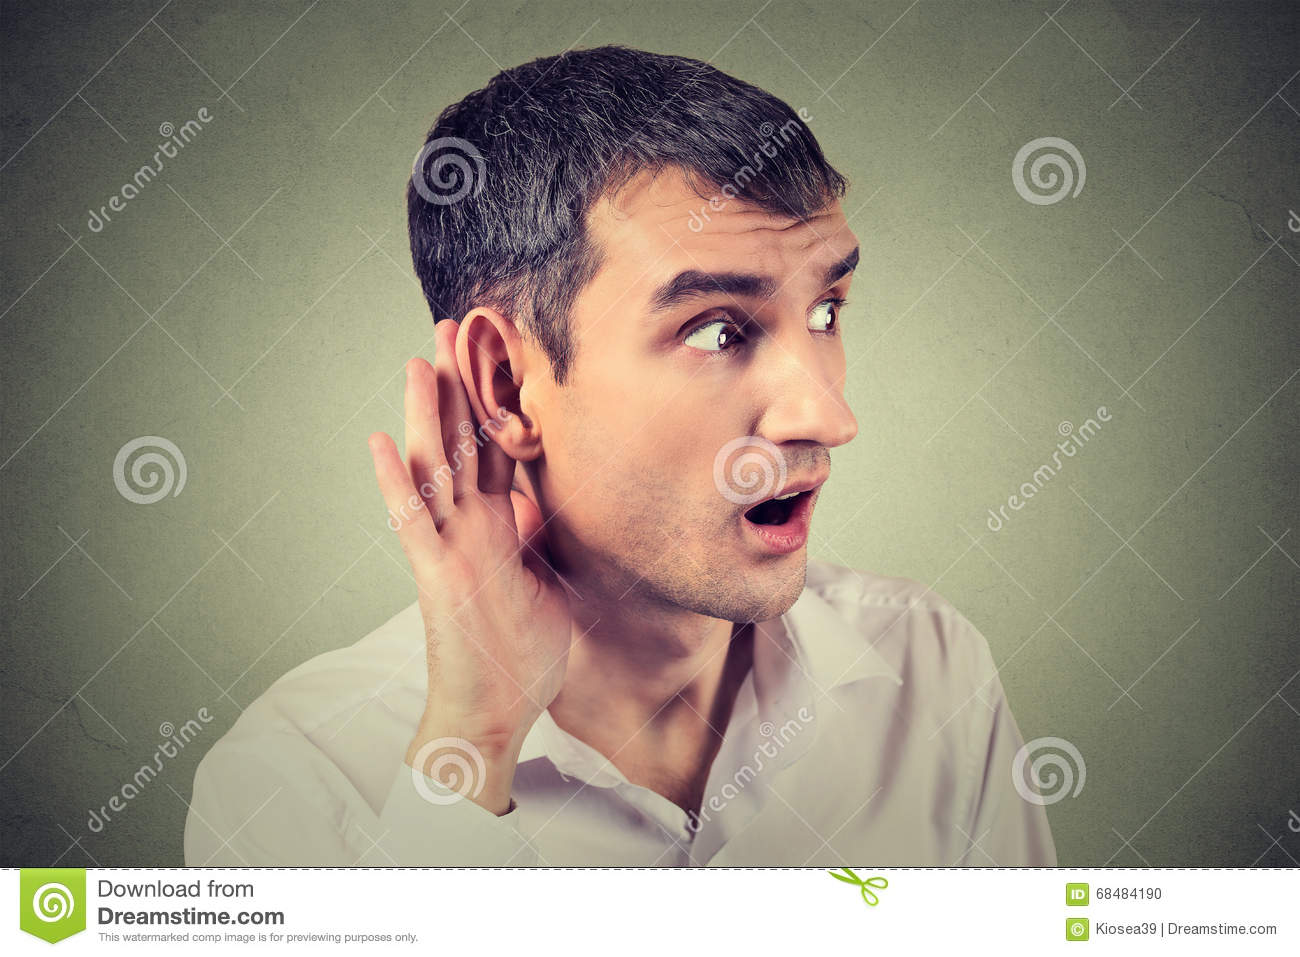 Man placing hand on ear asking someone to speak up or listening carefully to gossip